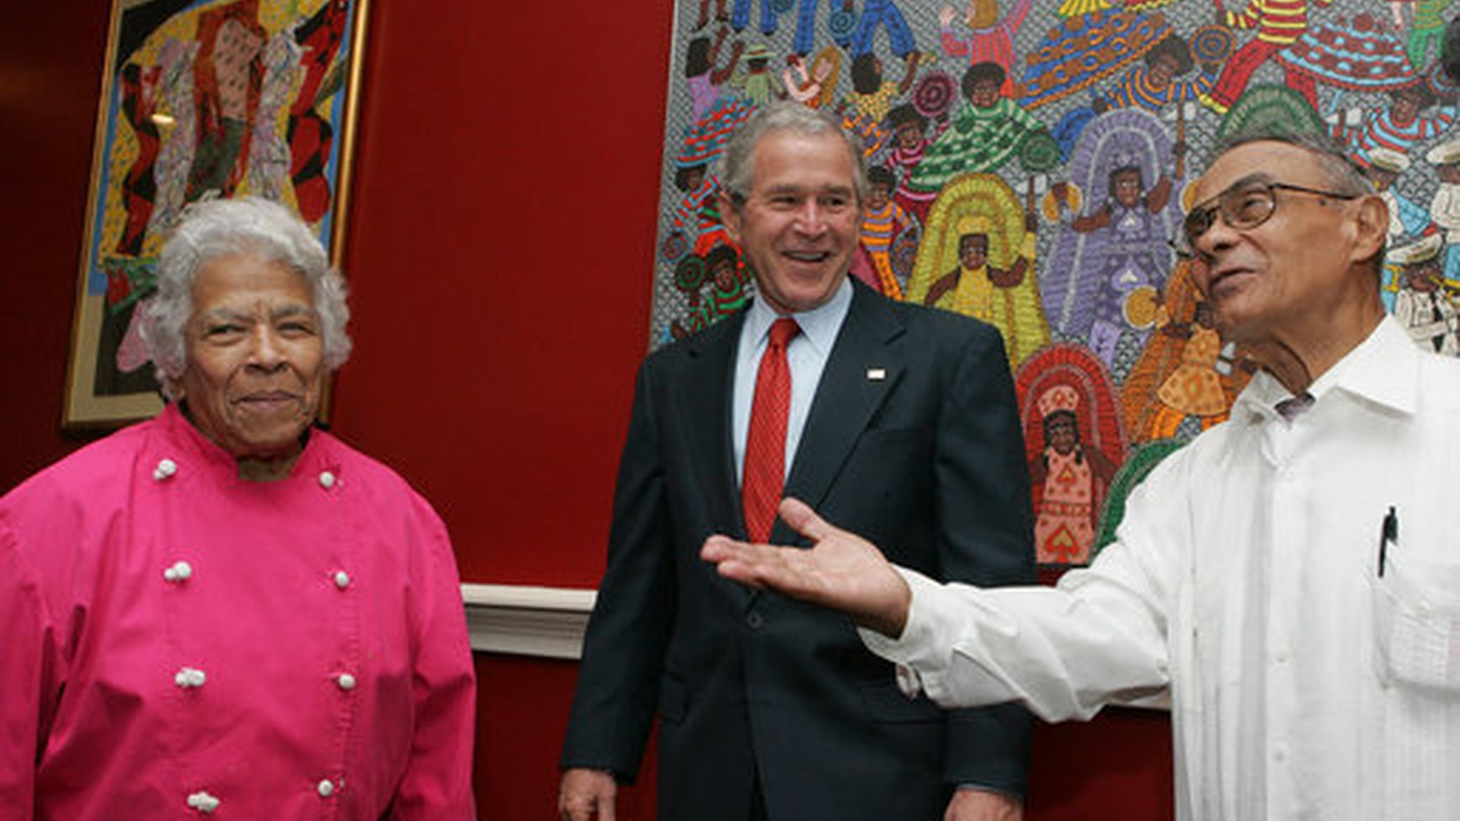 President George W. Bush visiting Dooky Chase's in 2008.